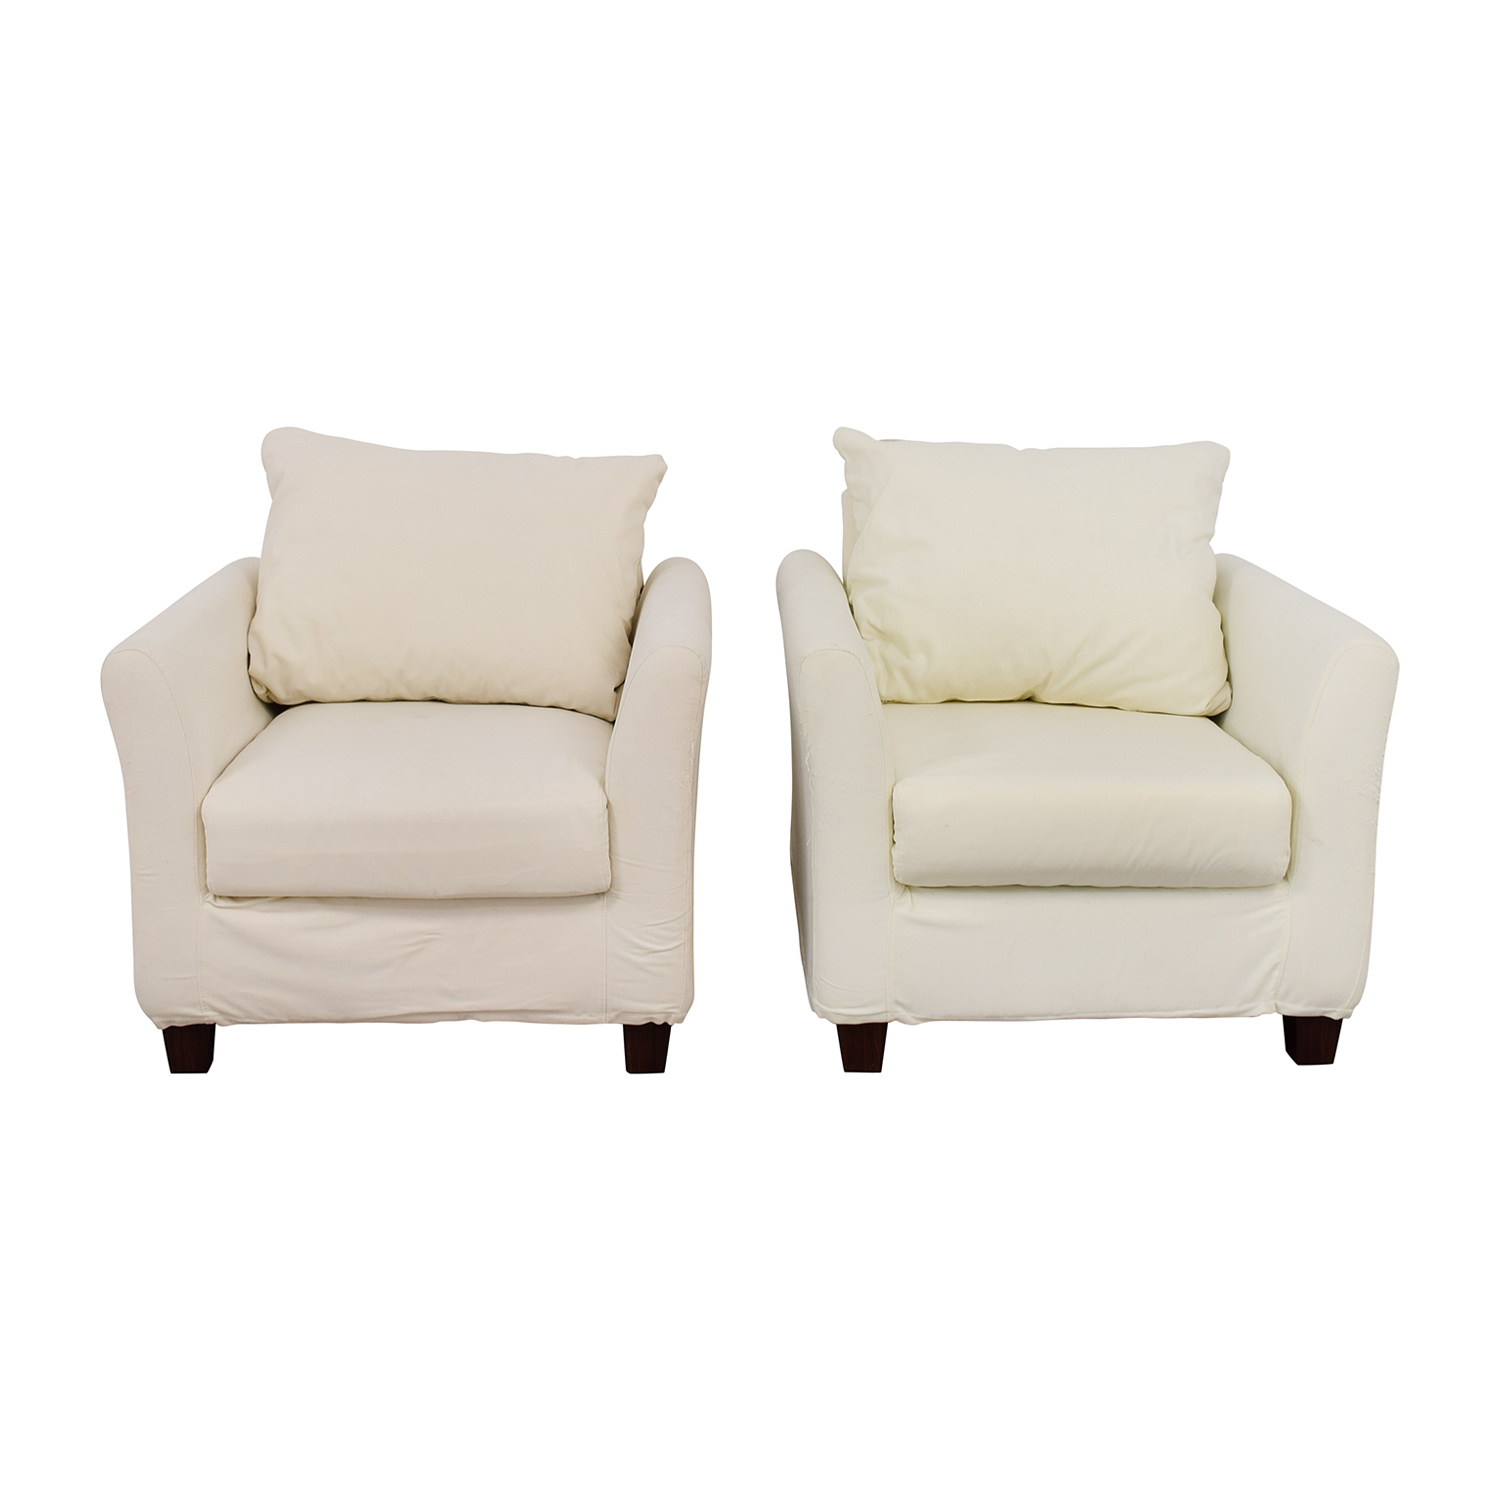 World Market World Market White Accent Chairs price